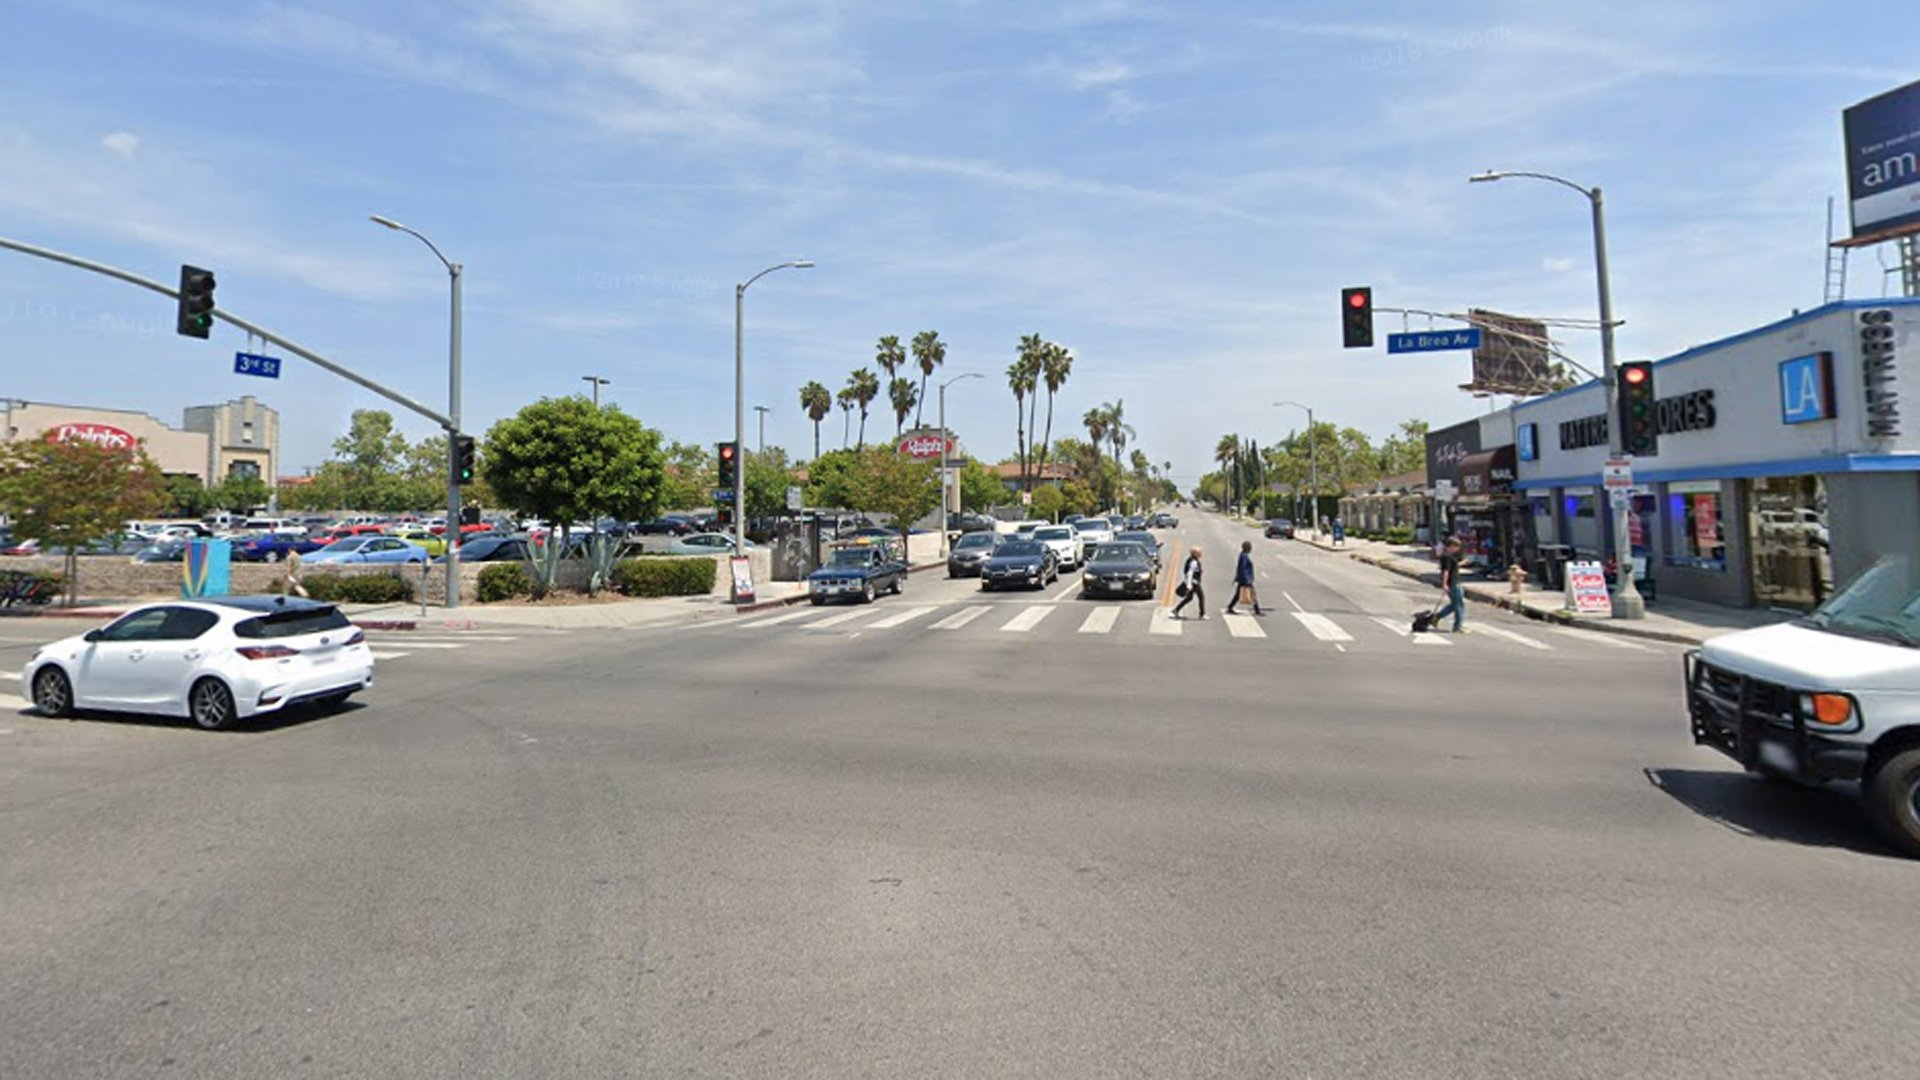 The intersection of La Brea Avenue and Third Street is shown in a Street View image from Google Maps.